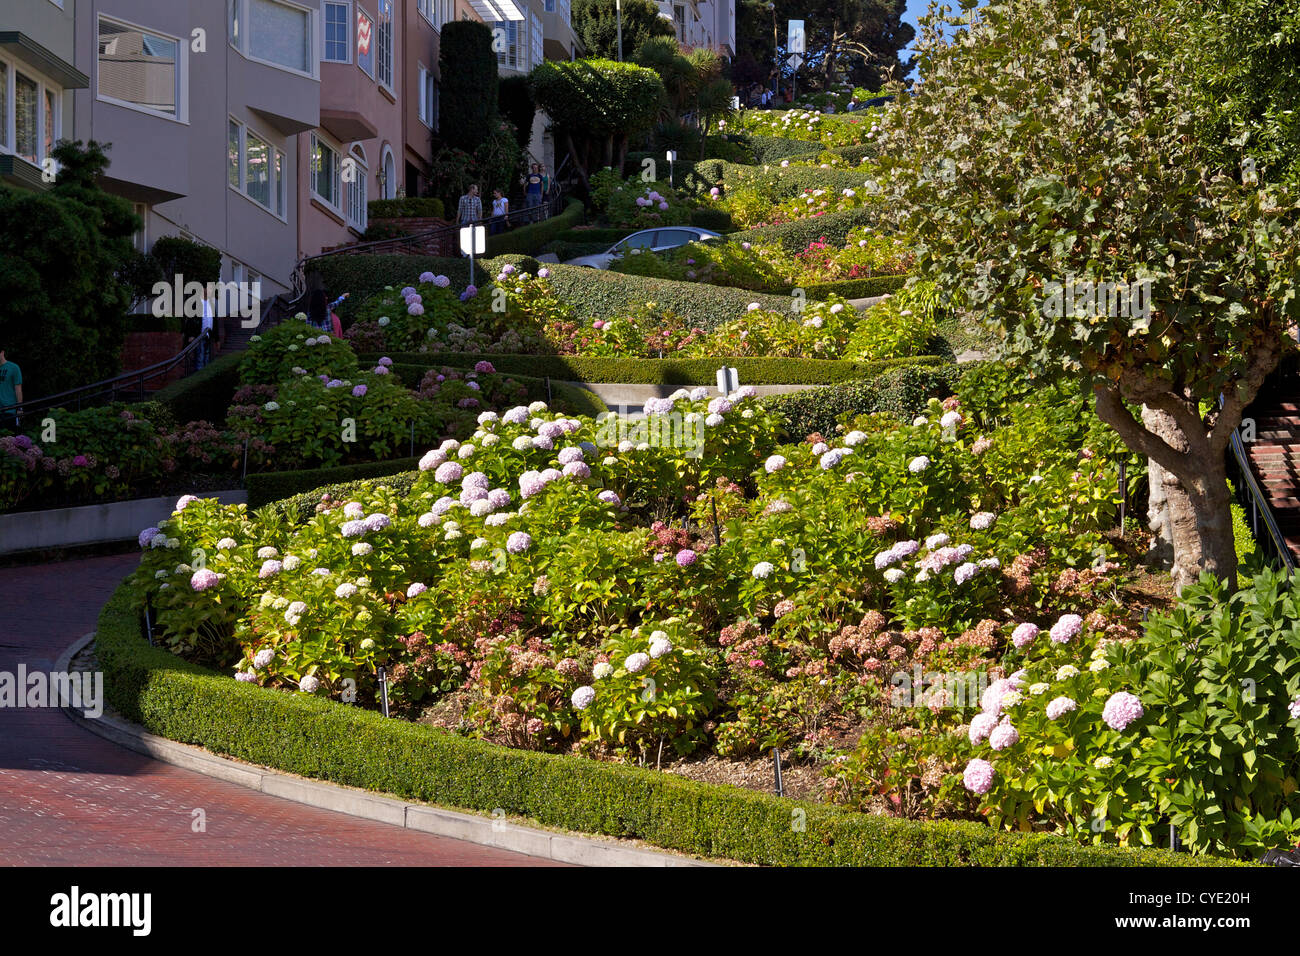 View down Lombard Street, famous for its steep, one-block section consisting of eight tight hairpin turns (switchbacks) - Stock Image